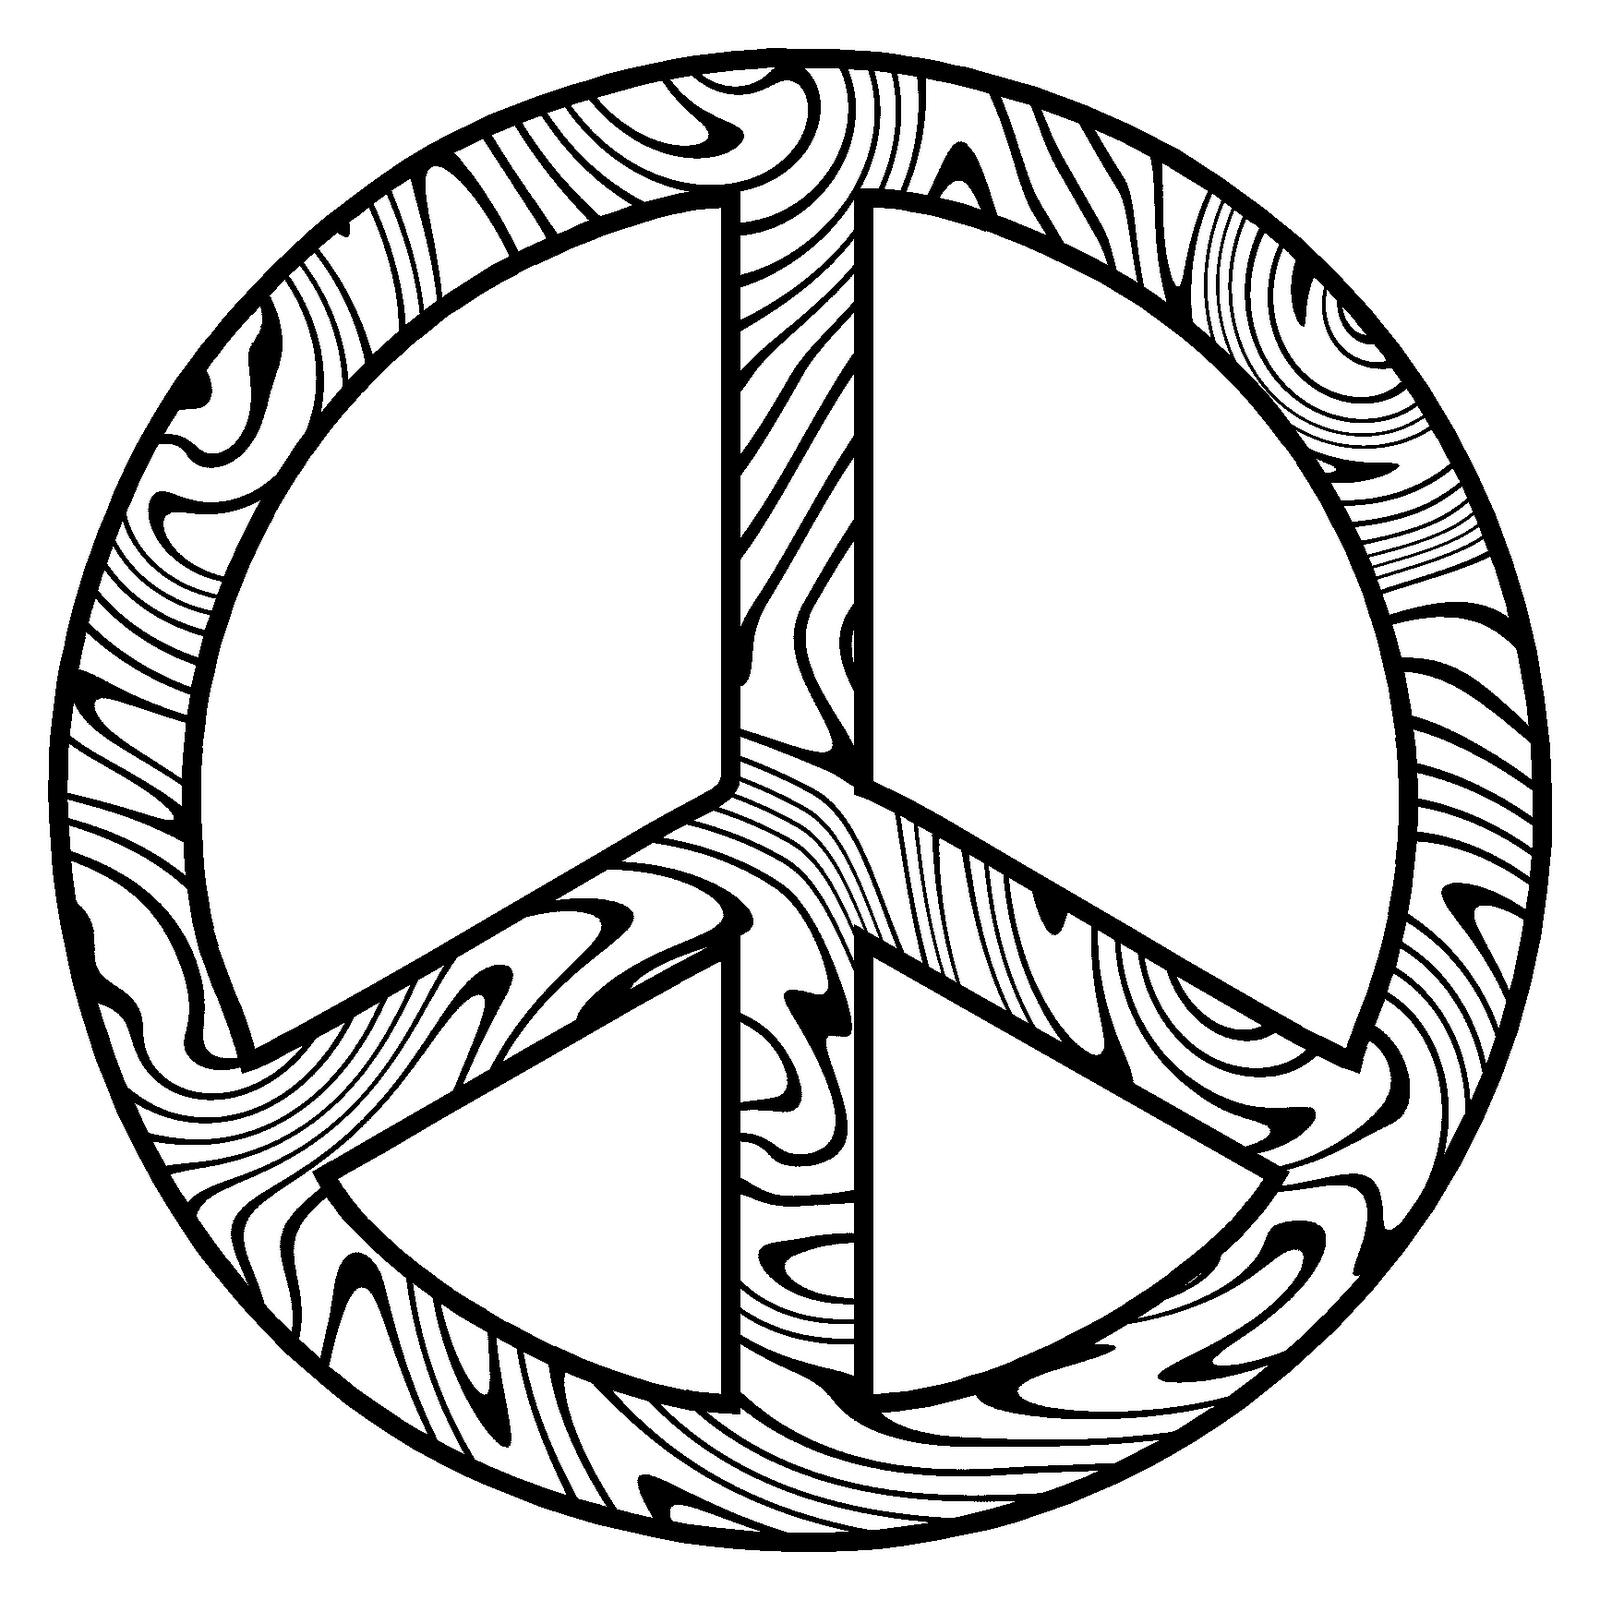 peace sign coloring page free printable peace sign coloring pages gtgt disney page peace coloring sign